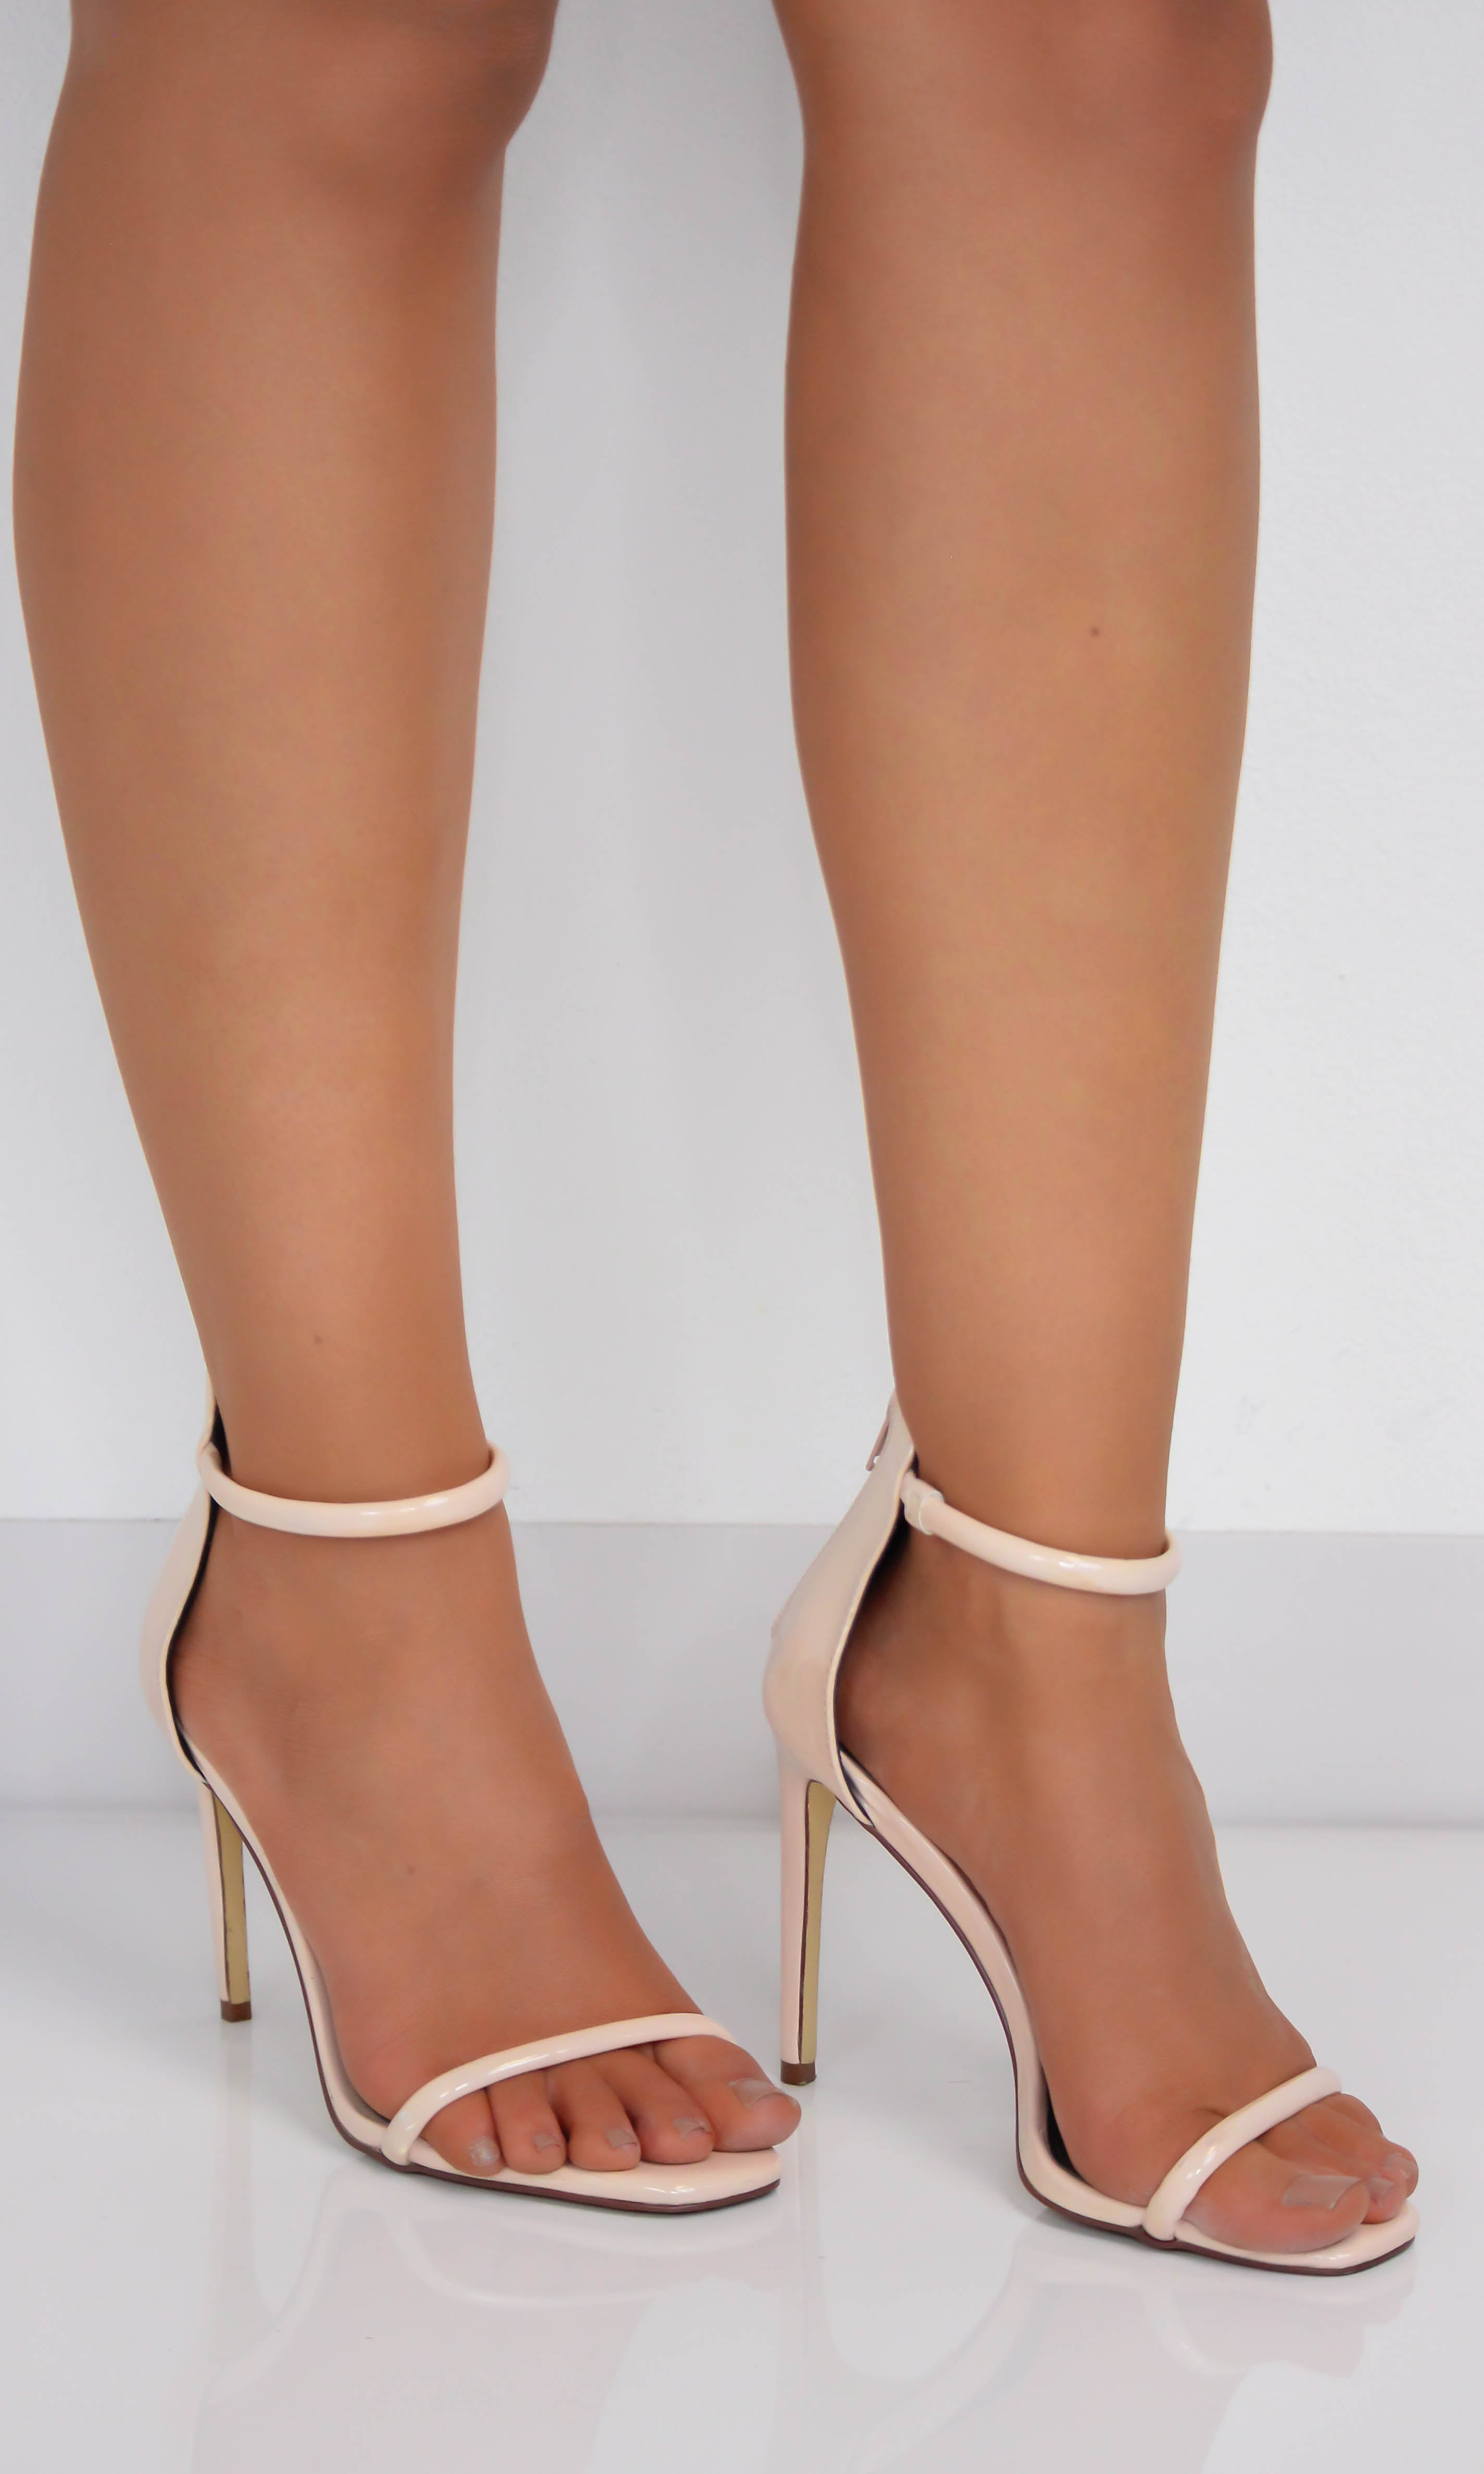 Nude Patent Ankle Strap Heels